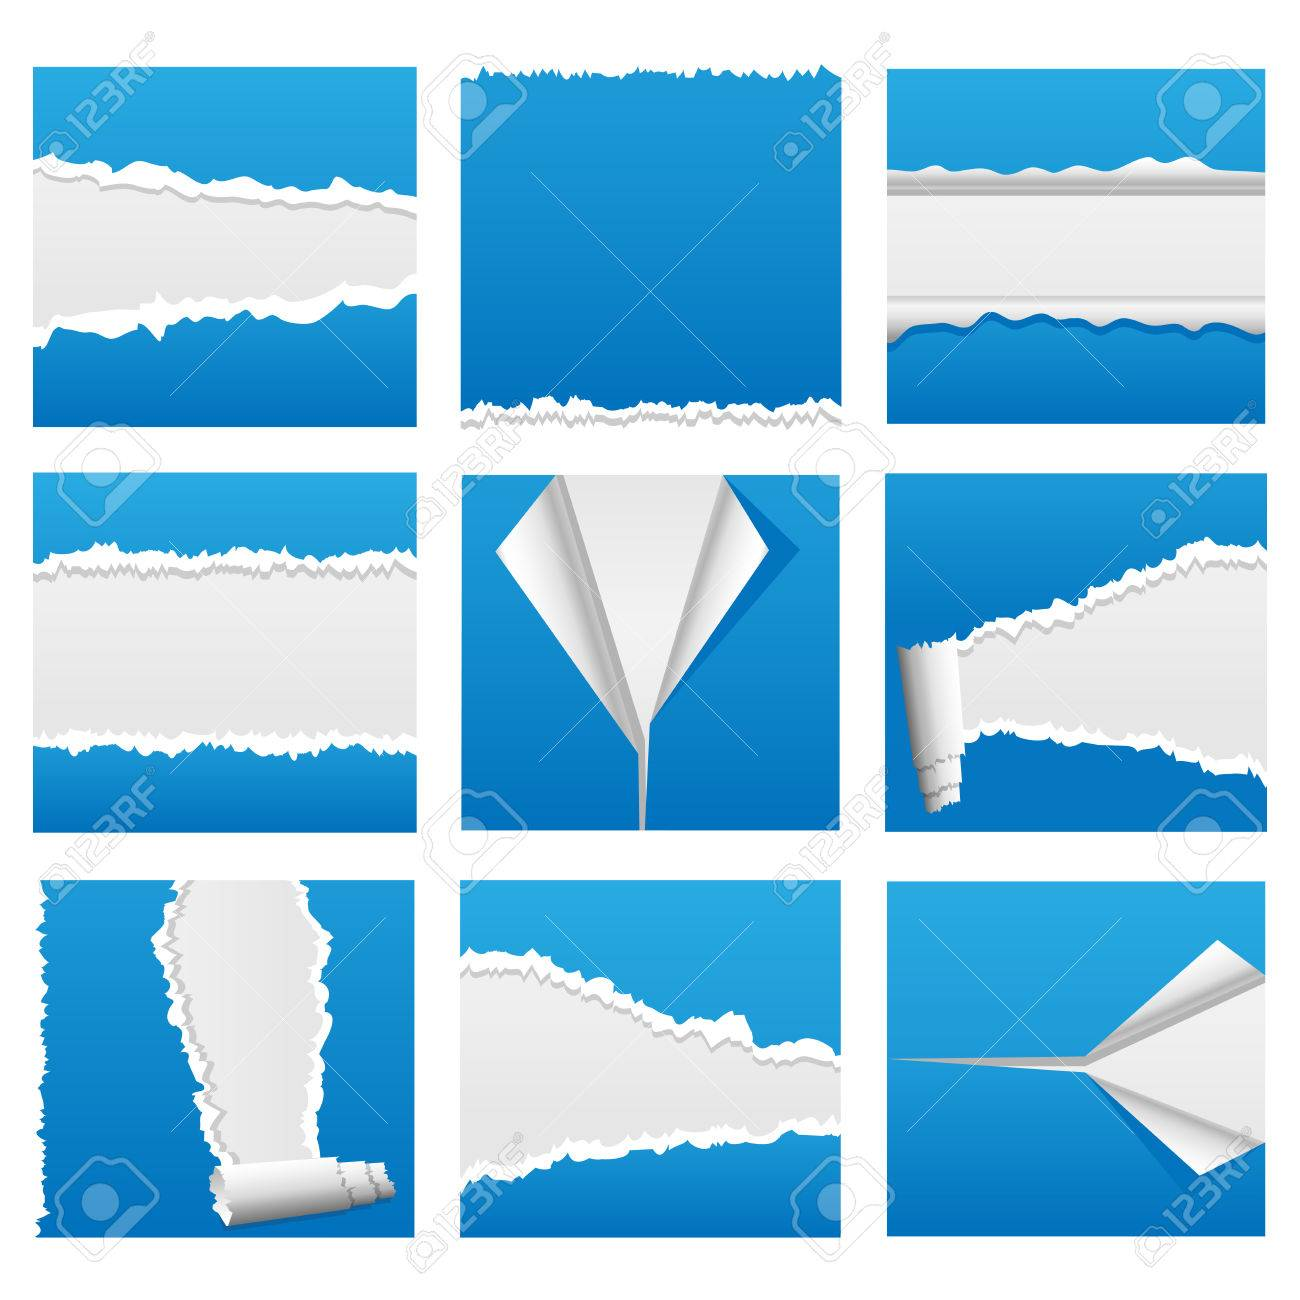 Torn paper design elements for web, presentations or computer applications. Rip, tear and peel variations included. Stock Vector - 6281730